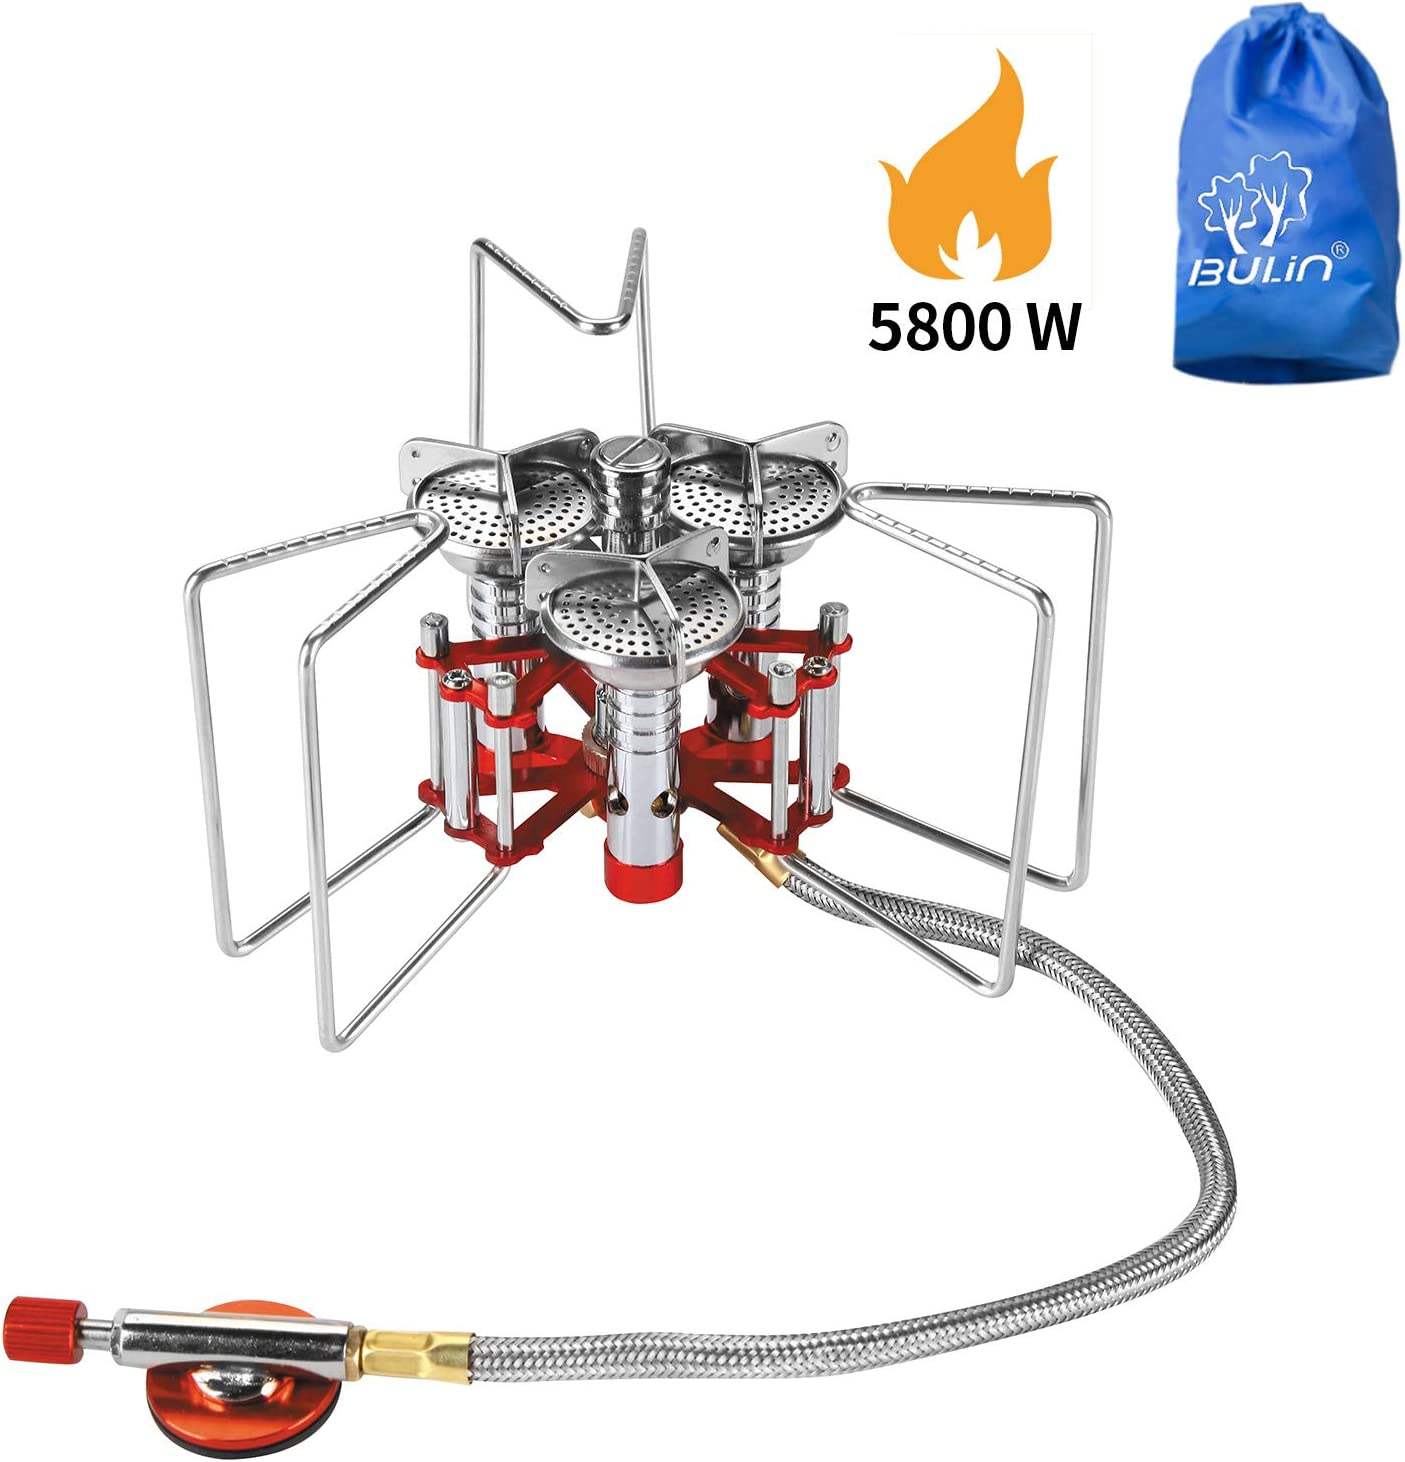 Bulin 5800W Ultralight Windproof Camping Gas Stove, Portable Small Mini Backpacking Hiking Stove Burner, Lightweight Outdoor Folding Camp Stove, Heavy Duty Support Up to 25KG